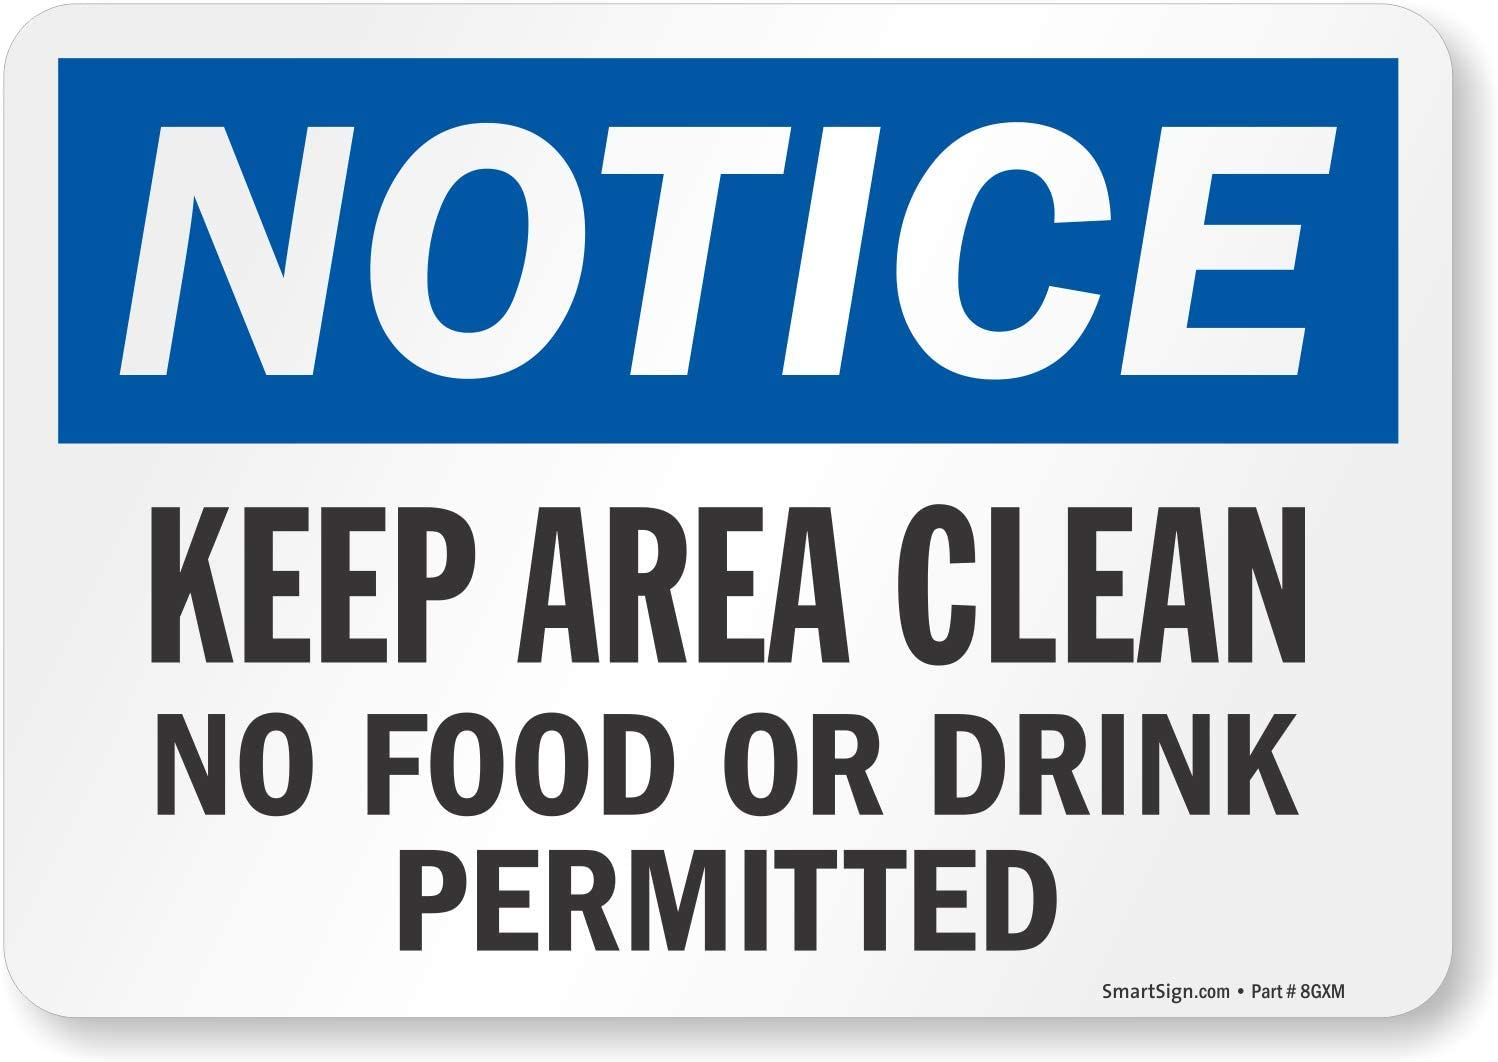 SmartSign - S-8382-EU-10 Notice - Keep Area Clean, No Food Or Drink Permitted Label By | 7